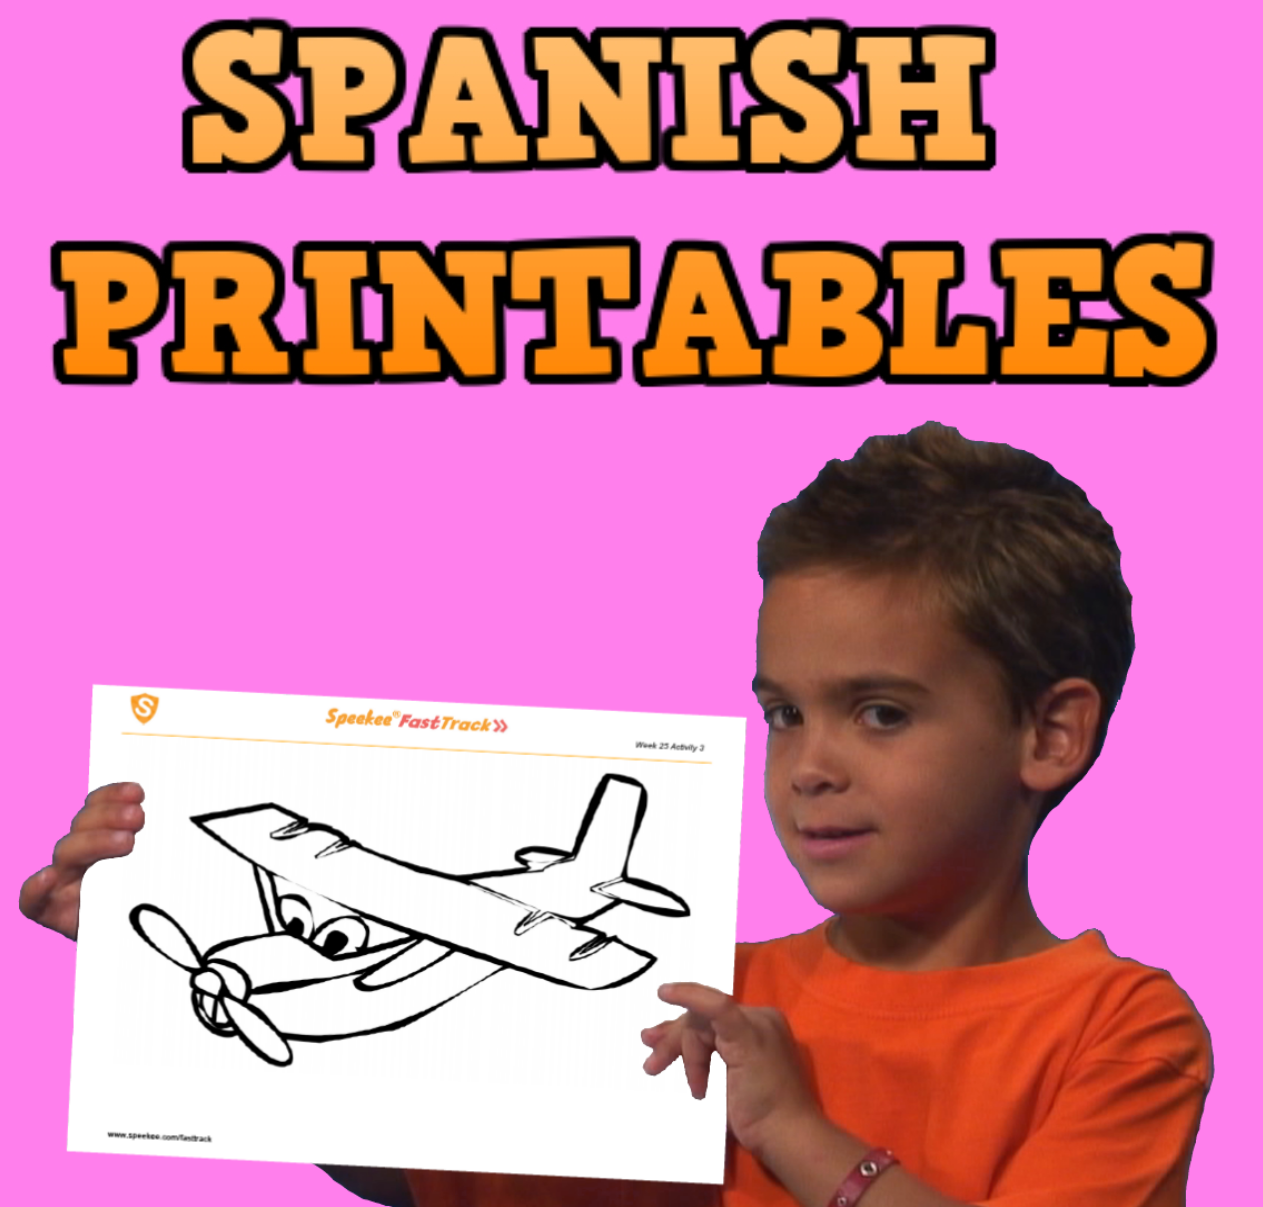 Spanish Printables For Elementary And Primary Levels